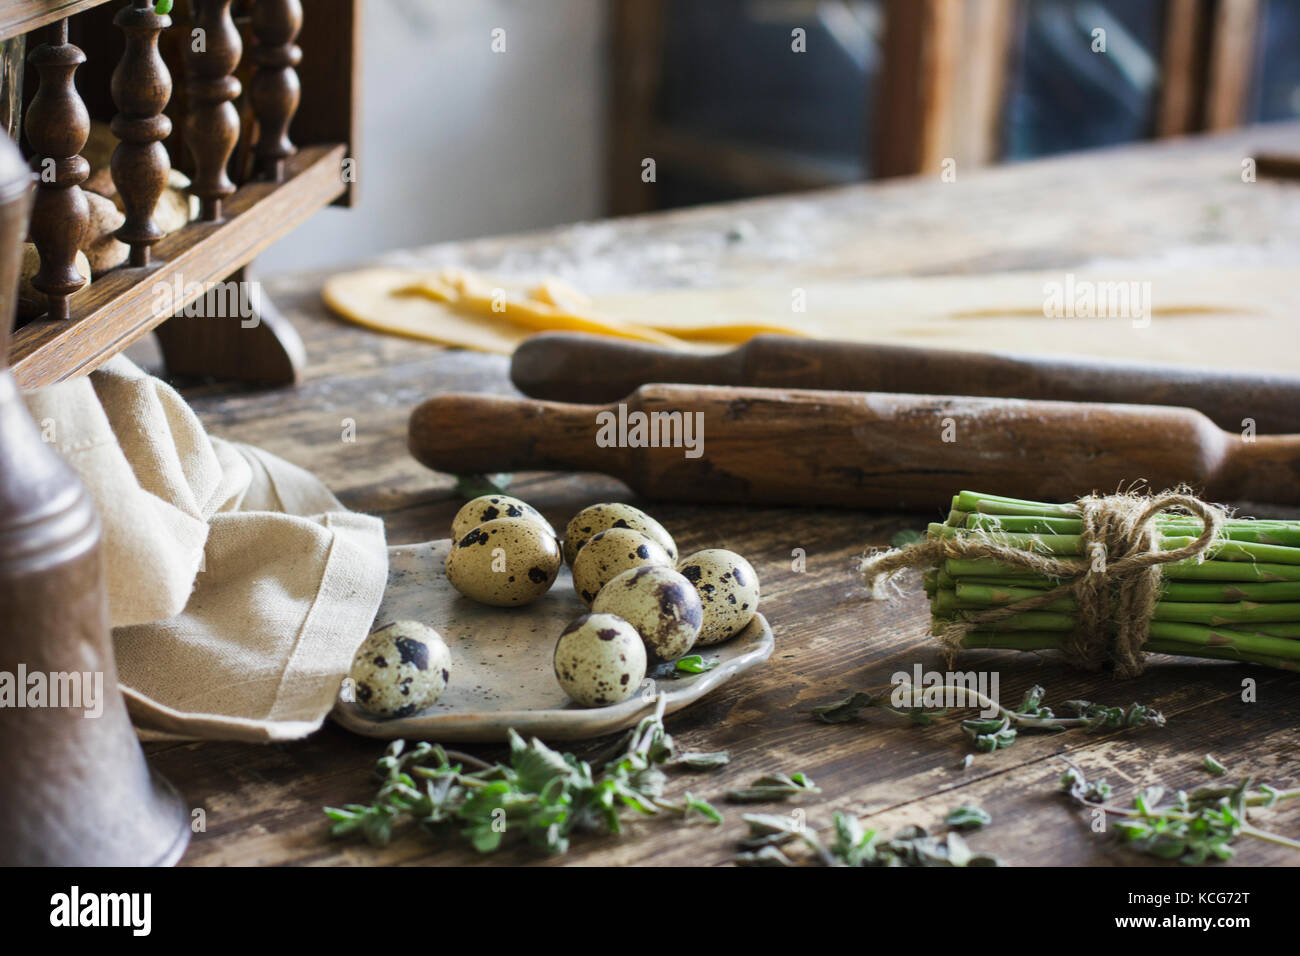 Ingredients for making homemade pasta, rolling pin, quail eggs, asparagus on wooden table - Stock Image